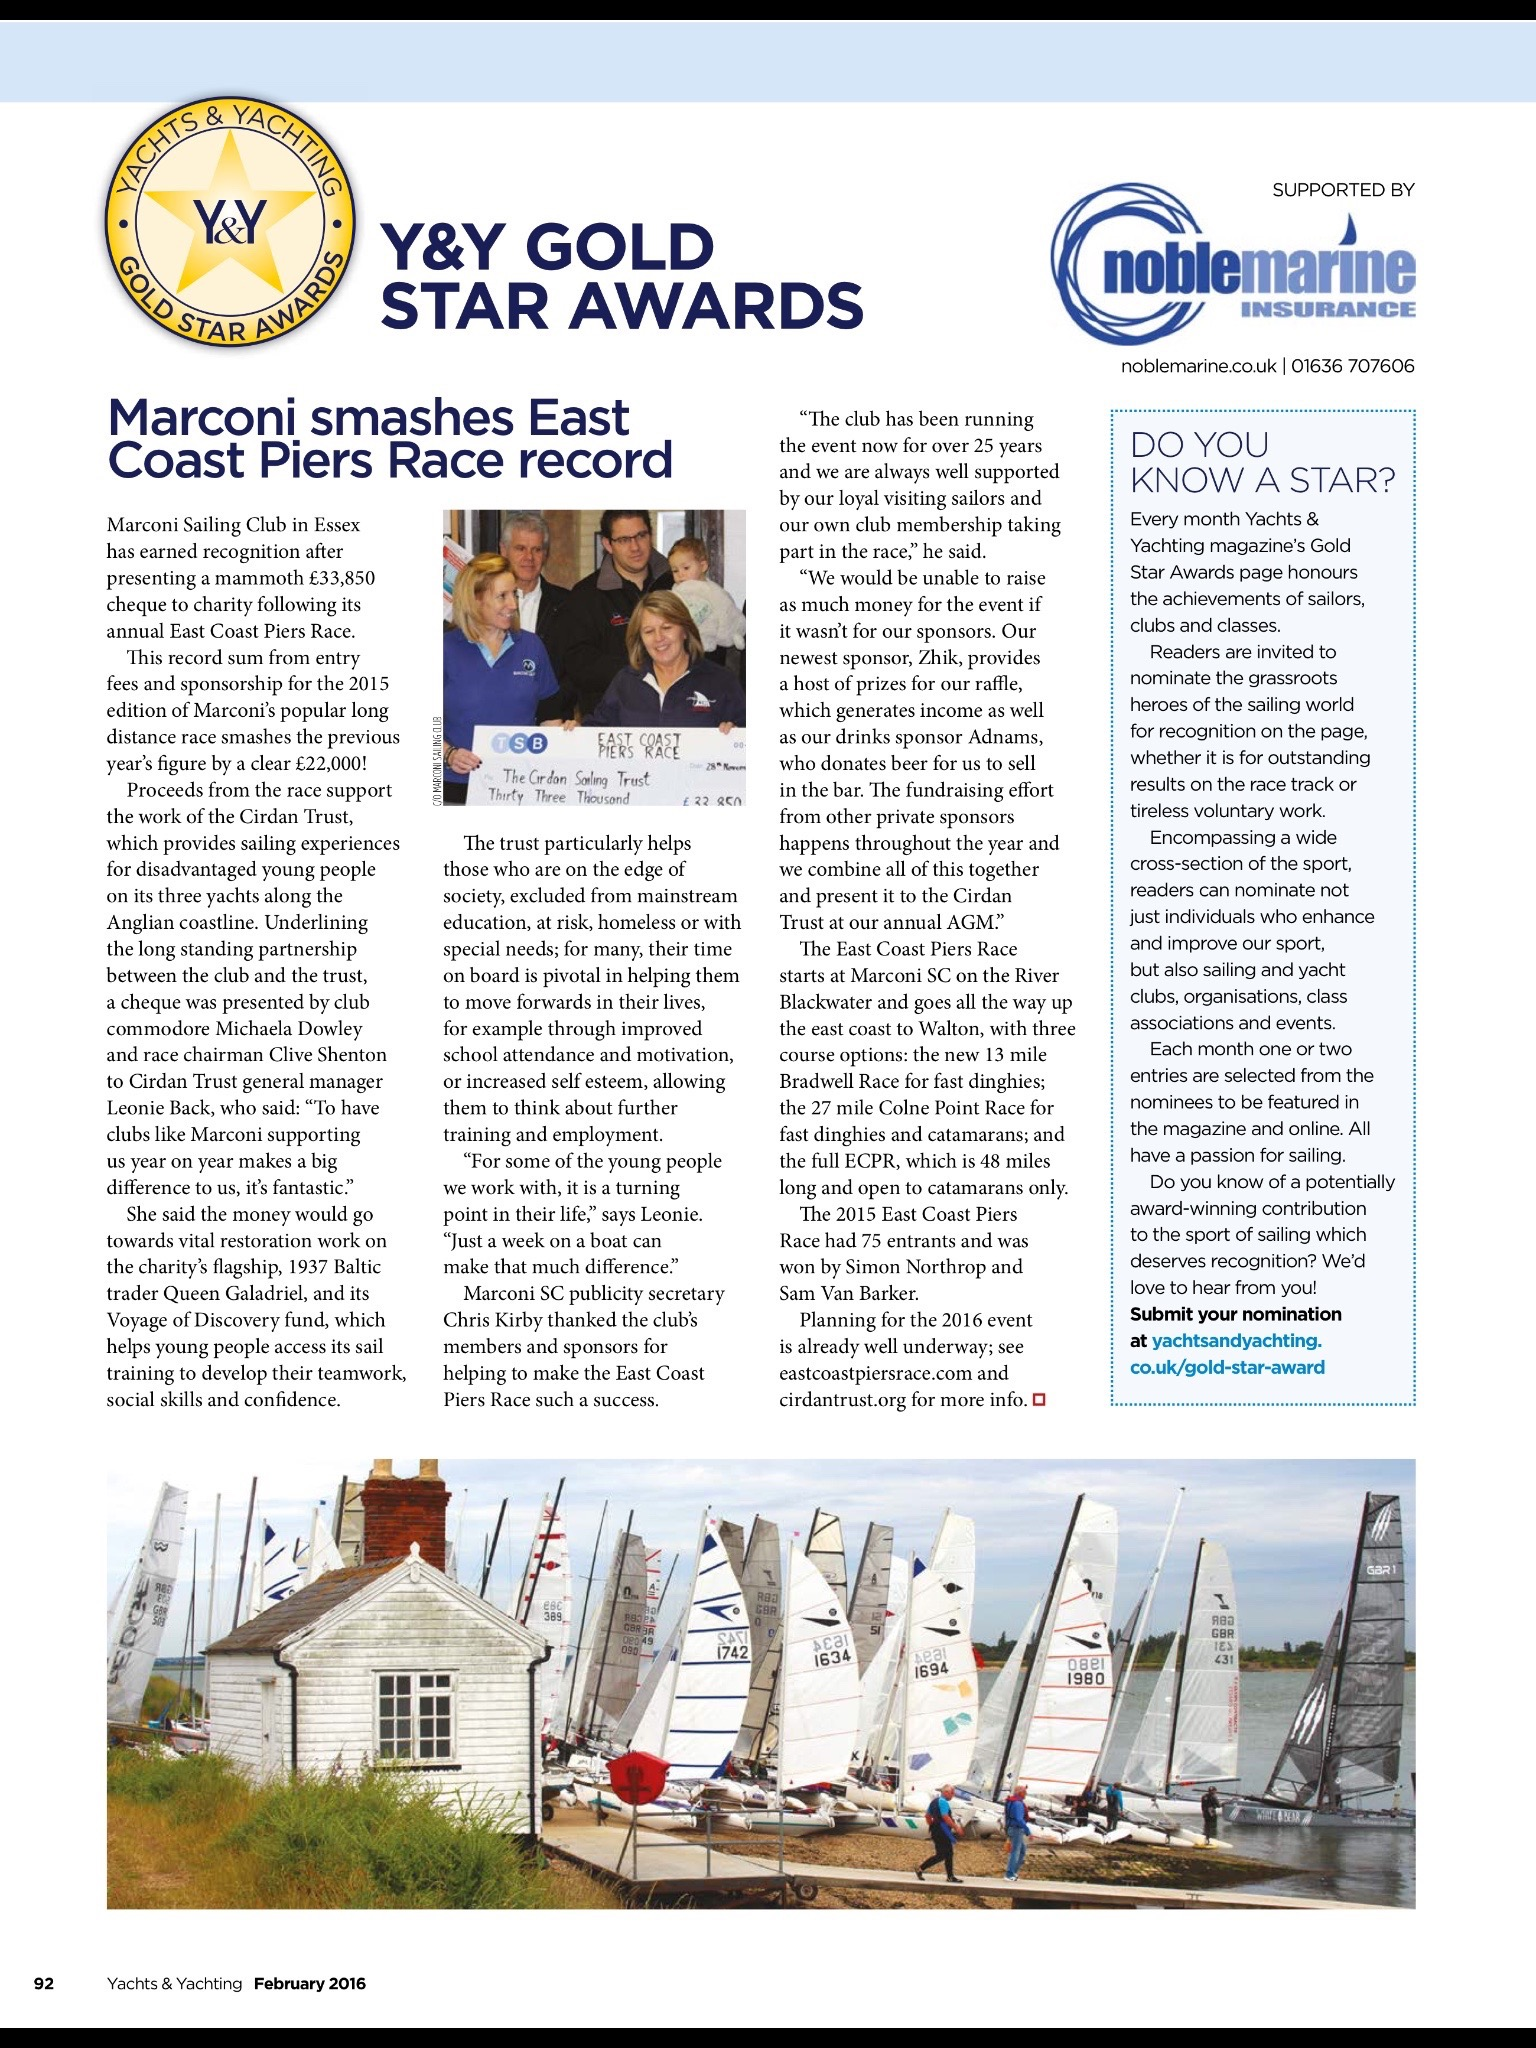 Yachts and Yachting Gold Star Award for Marconi Sailing Club